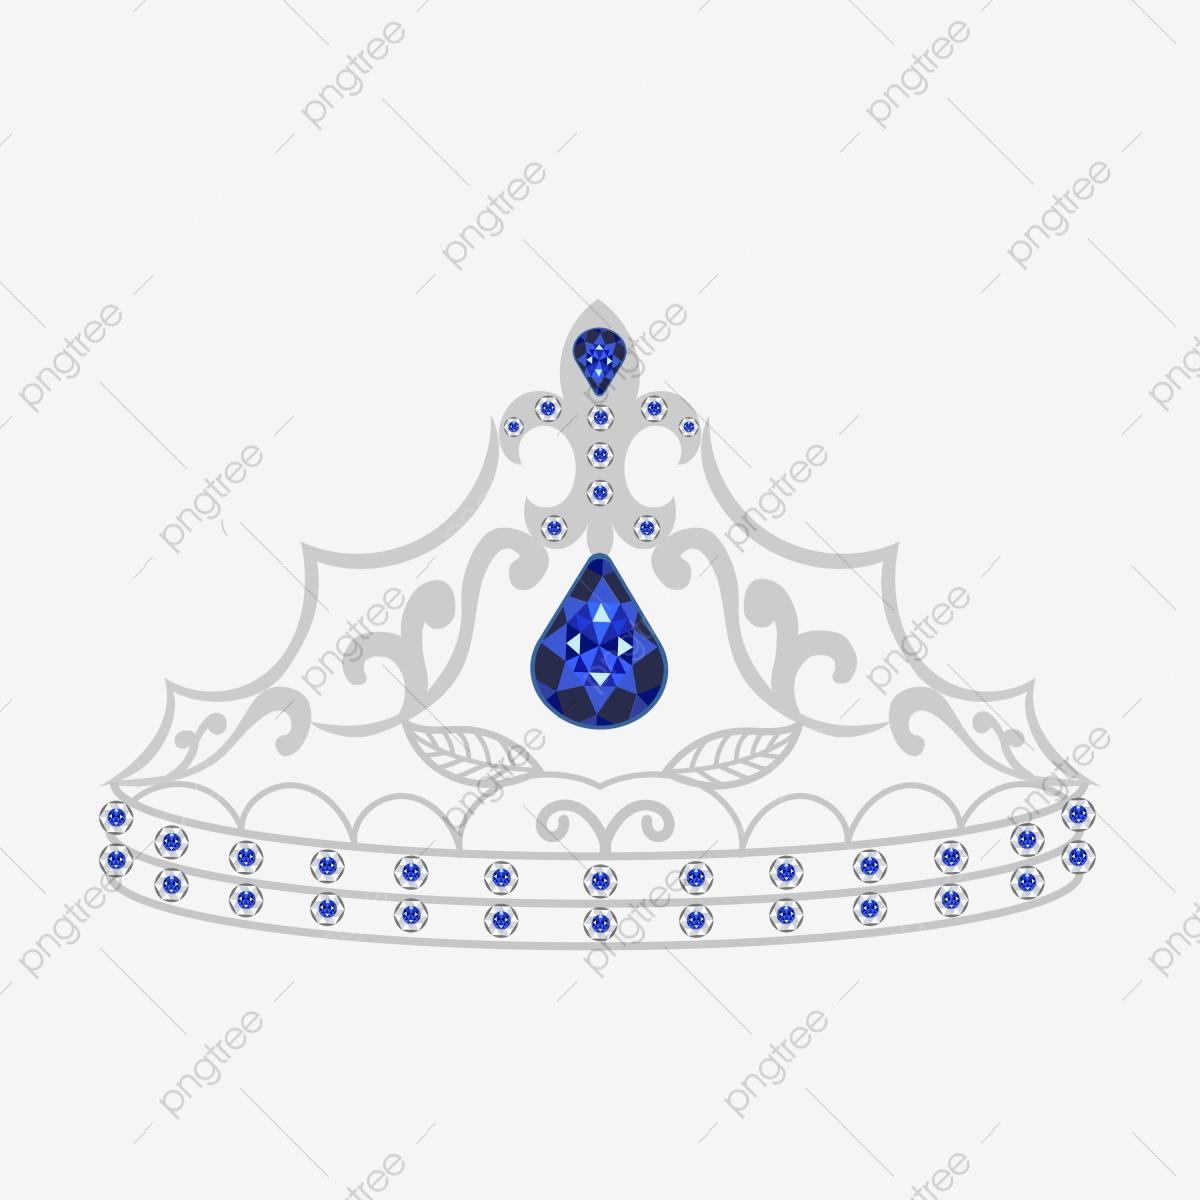 Silver Crown Png Images Vector And Psd Files Free Download On Pngtree 135,092 crown cartoons on gograph. https pngtree com freepng cartoon princess silver crown 4616505 html